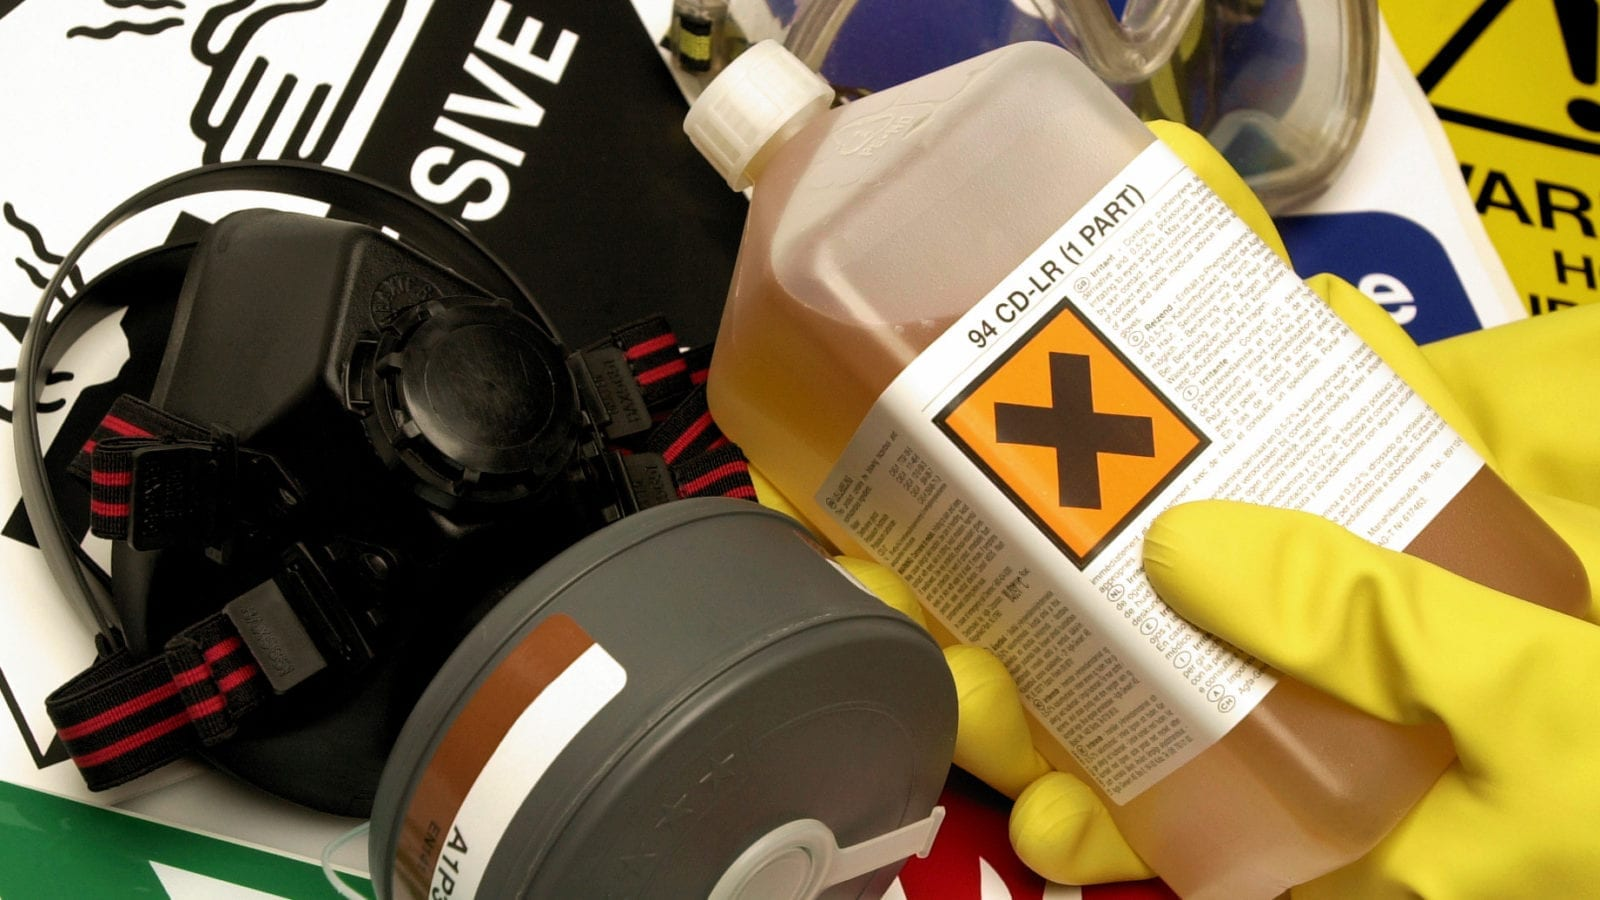 RoSPA approved COSHH hazardous materials handling course